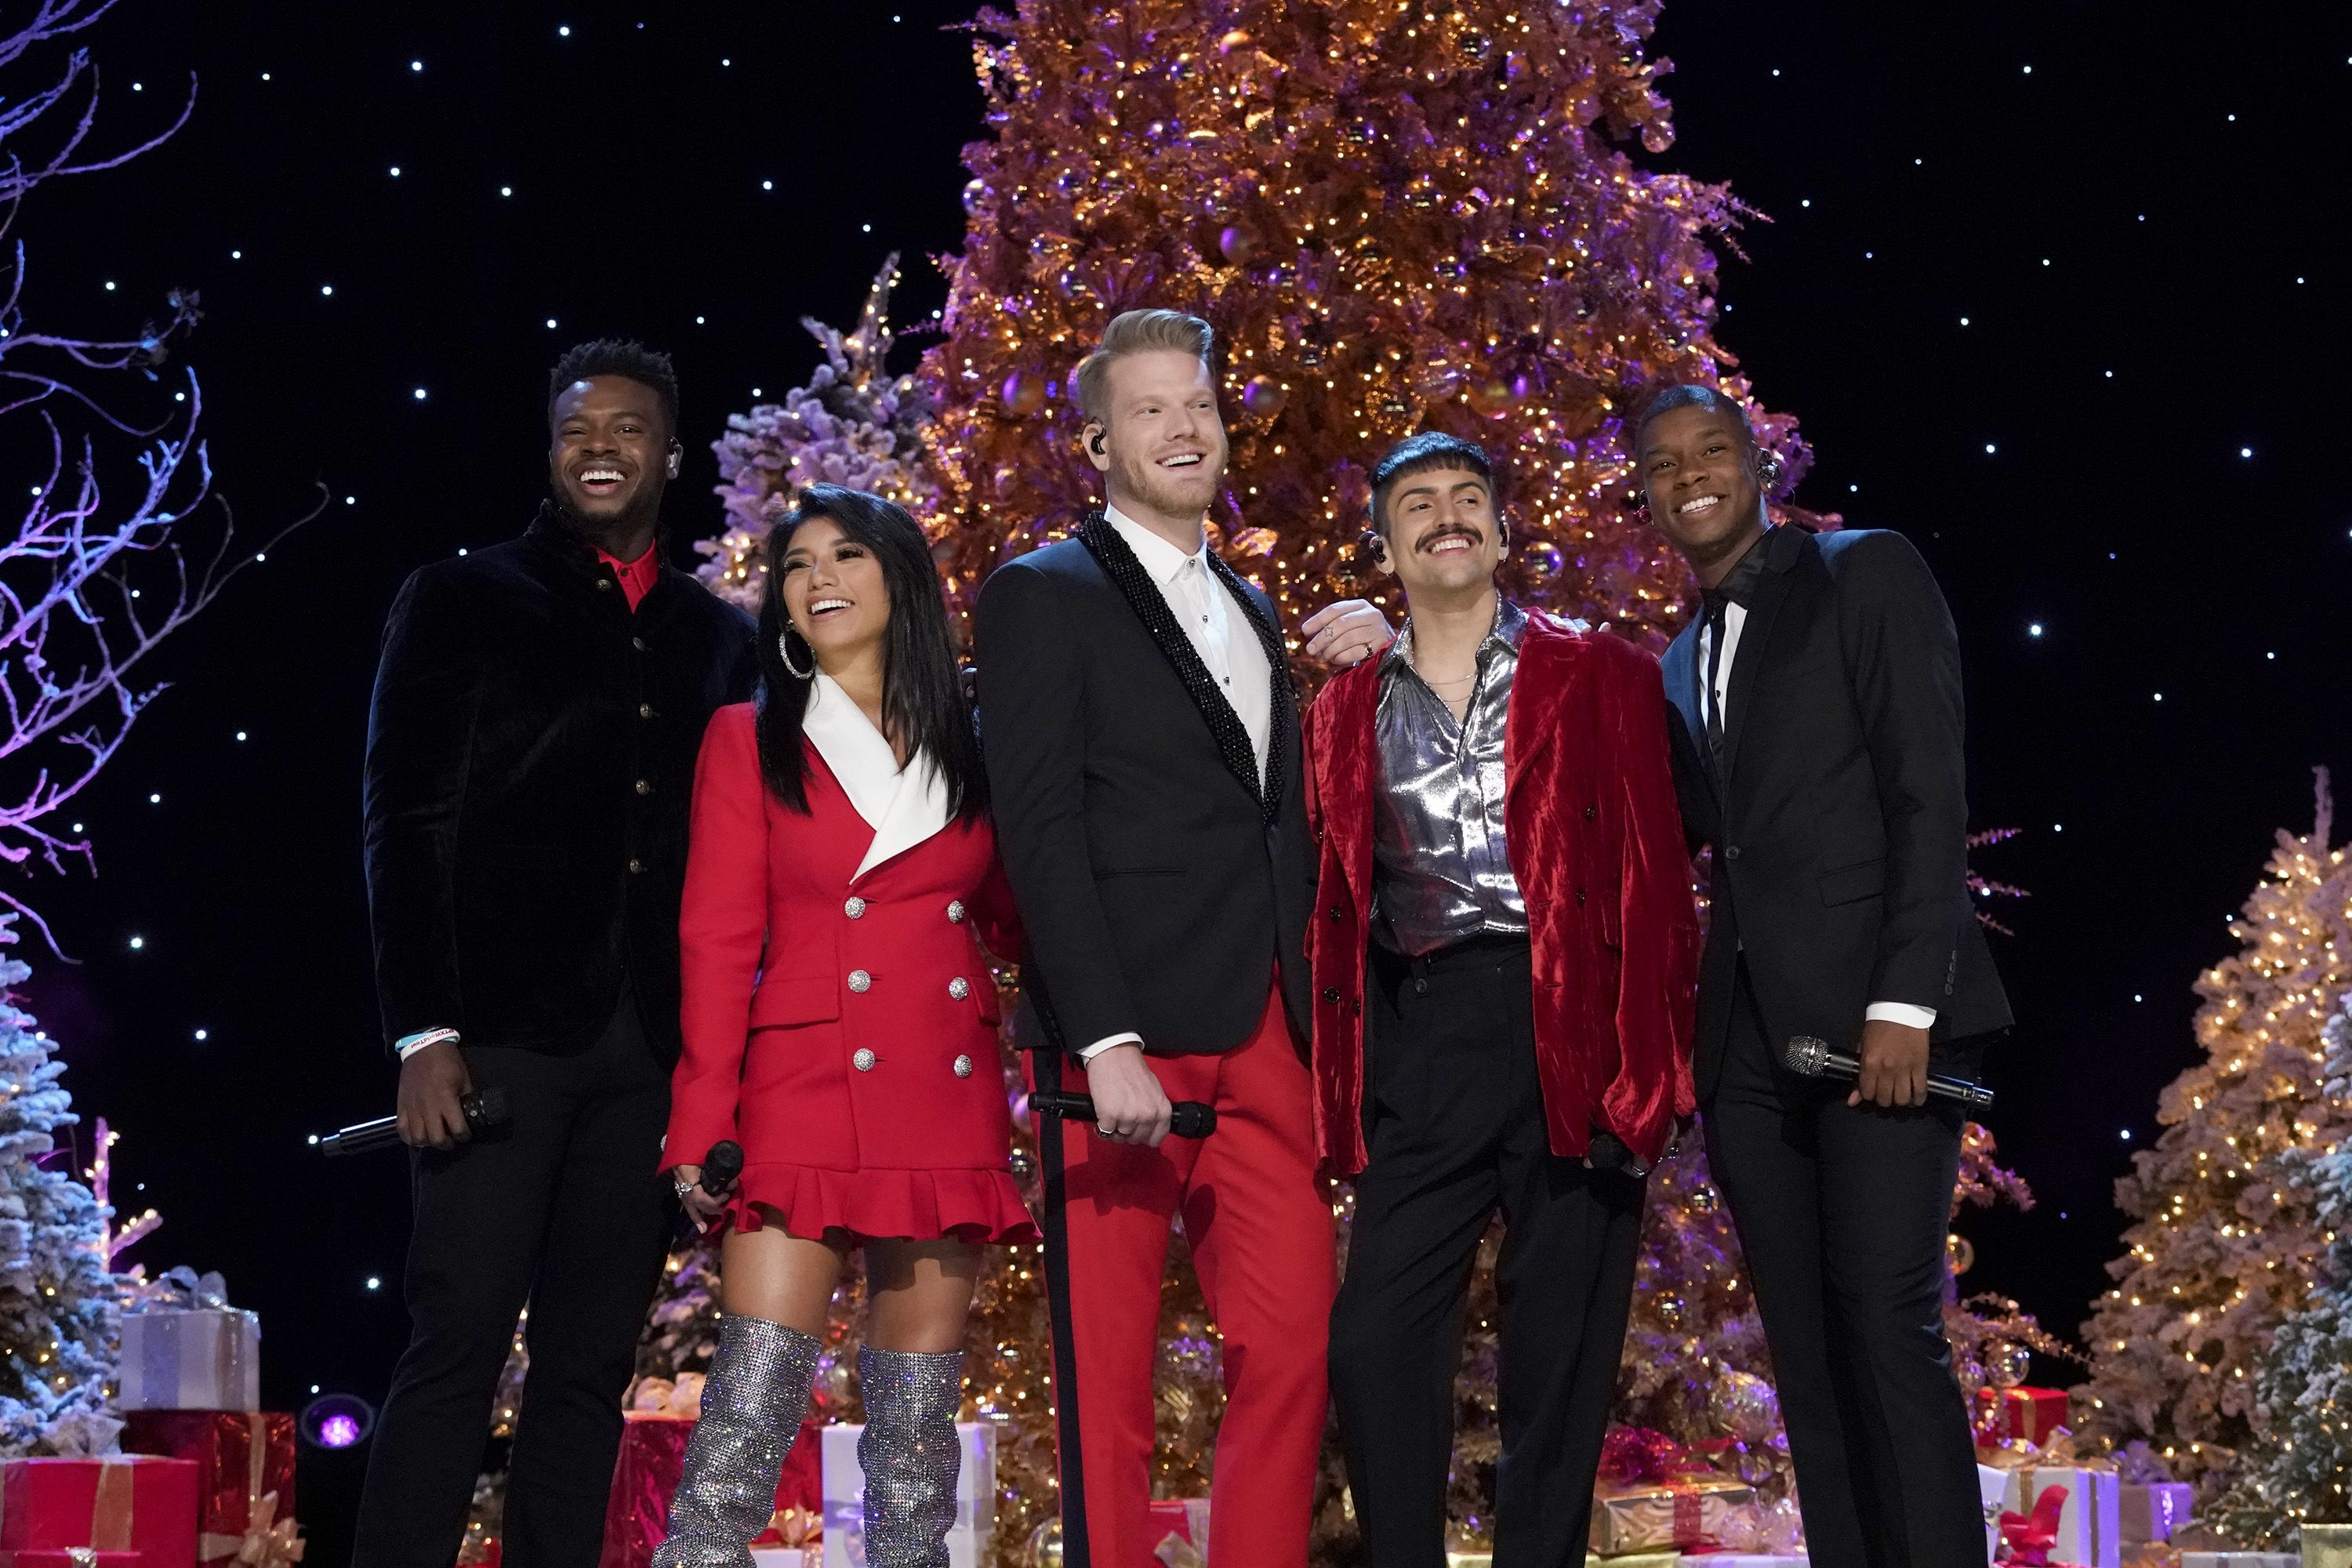 Pentatonix Christmas Songs.The Pentatonix Releases 2018 Christmas Album Christmas Is Here